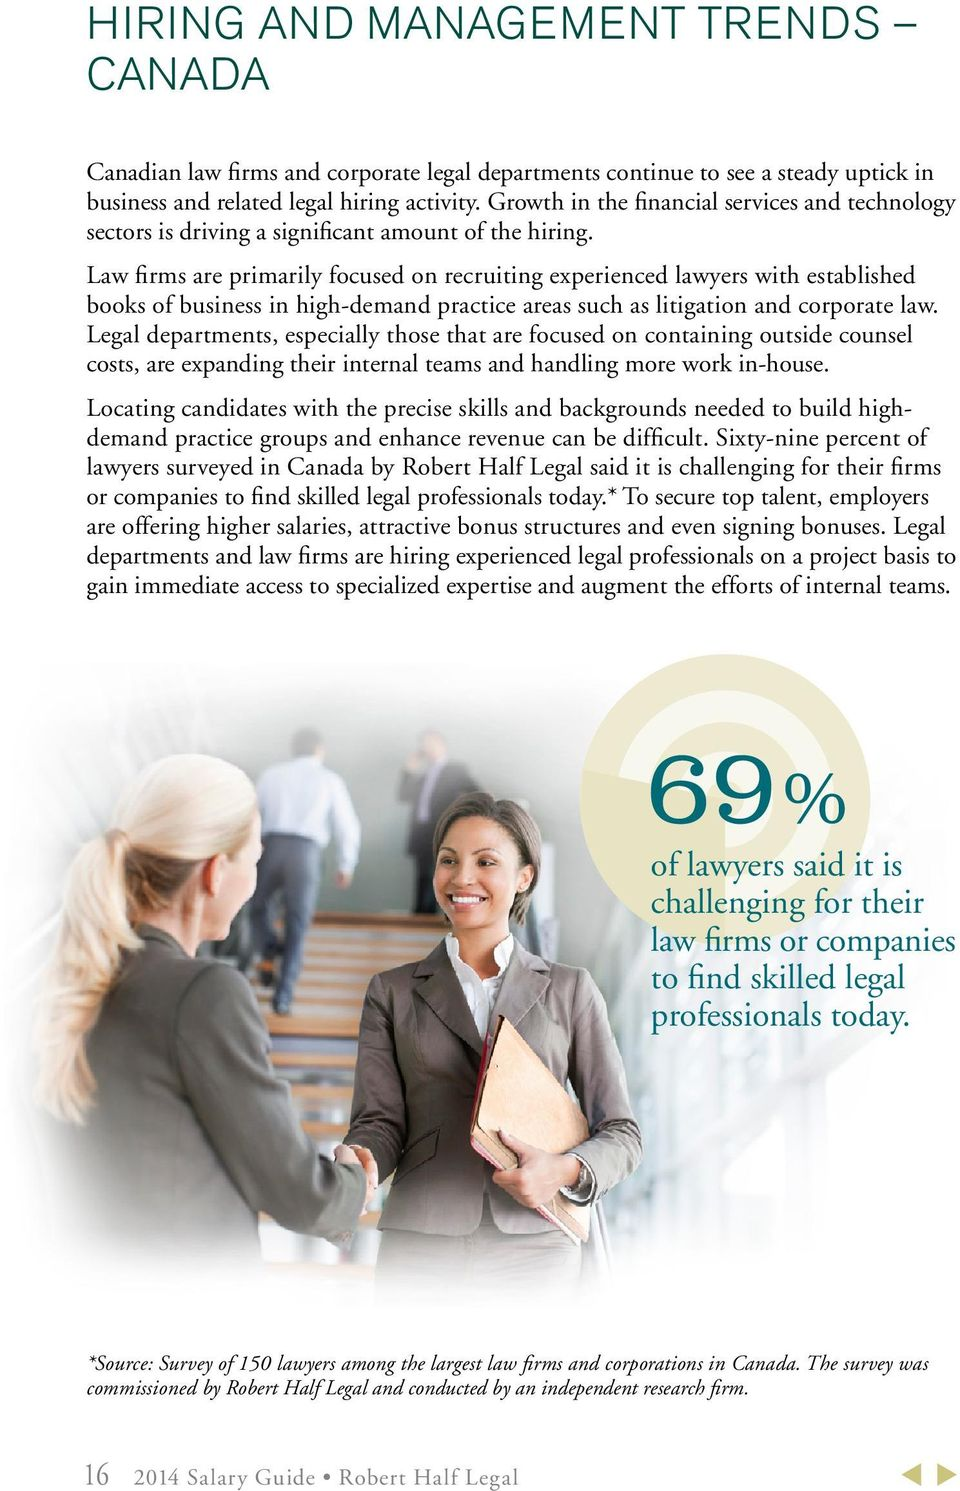 Law firms are primarily focused on recruiting experienced lawyers with established books of business in high-demand practice areas such as litigation and corporate law.